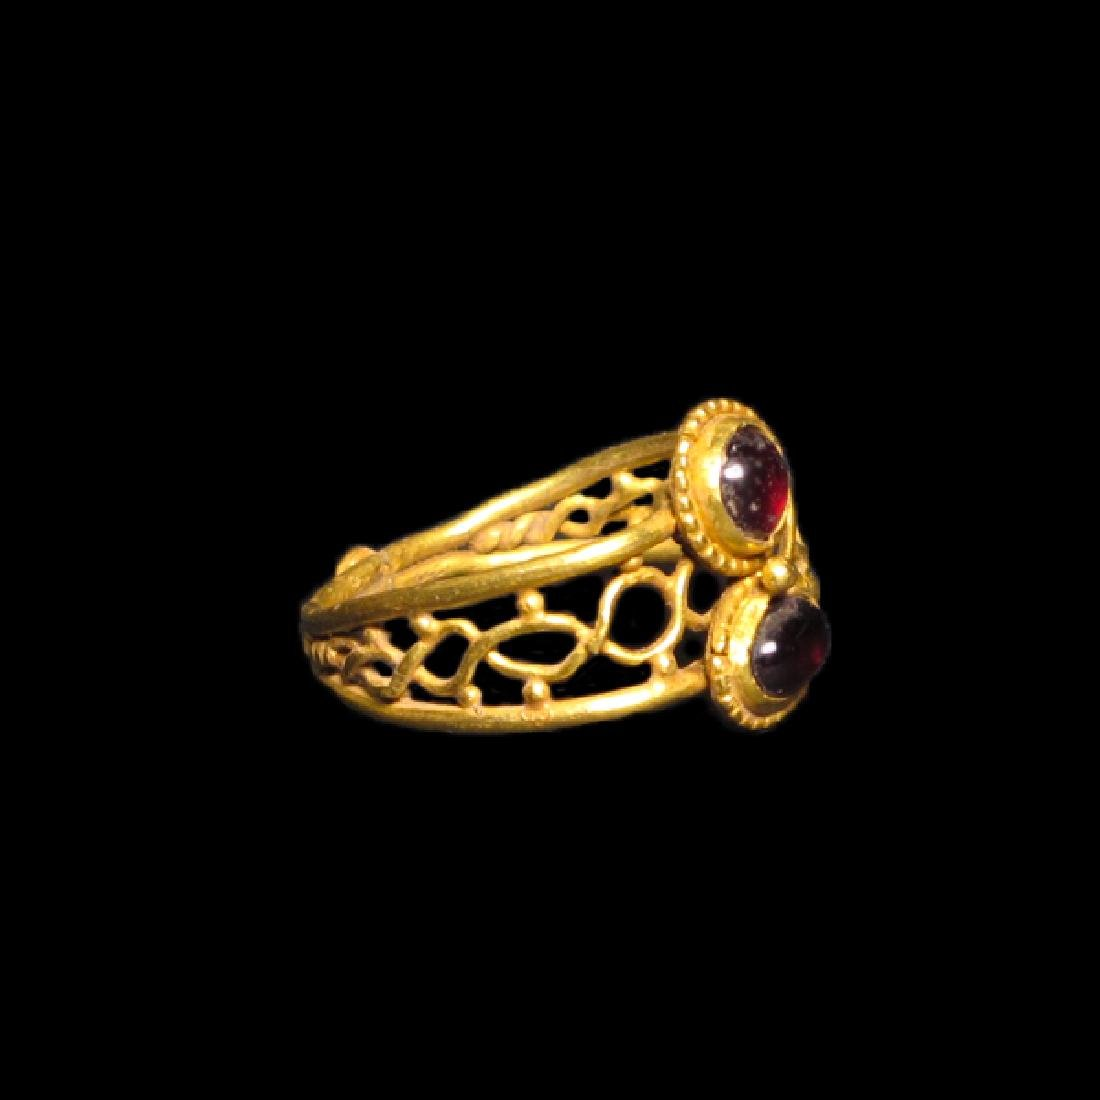 Roman Gold and Garnet Ring, c. 2nd-3rd Century A.D. - 2